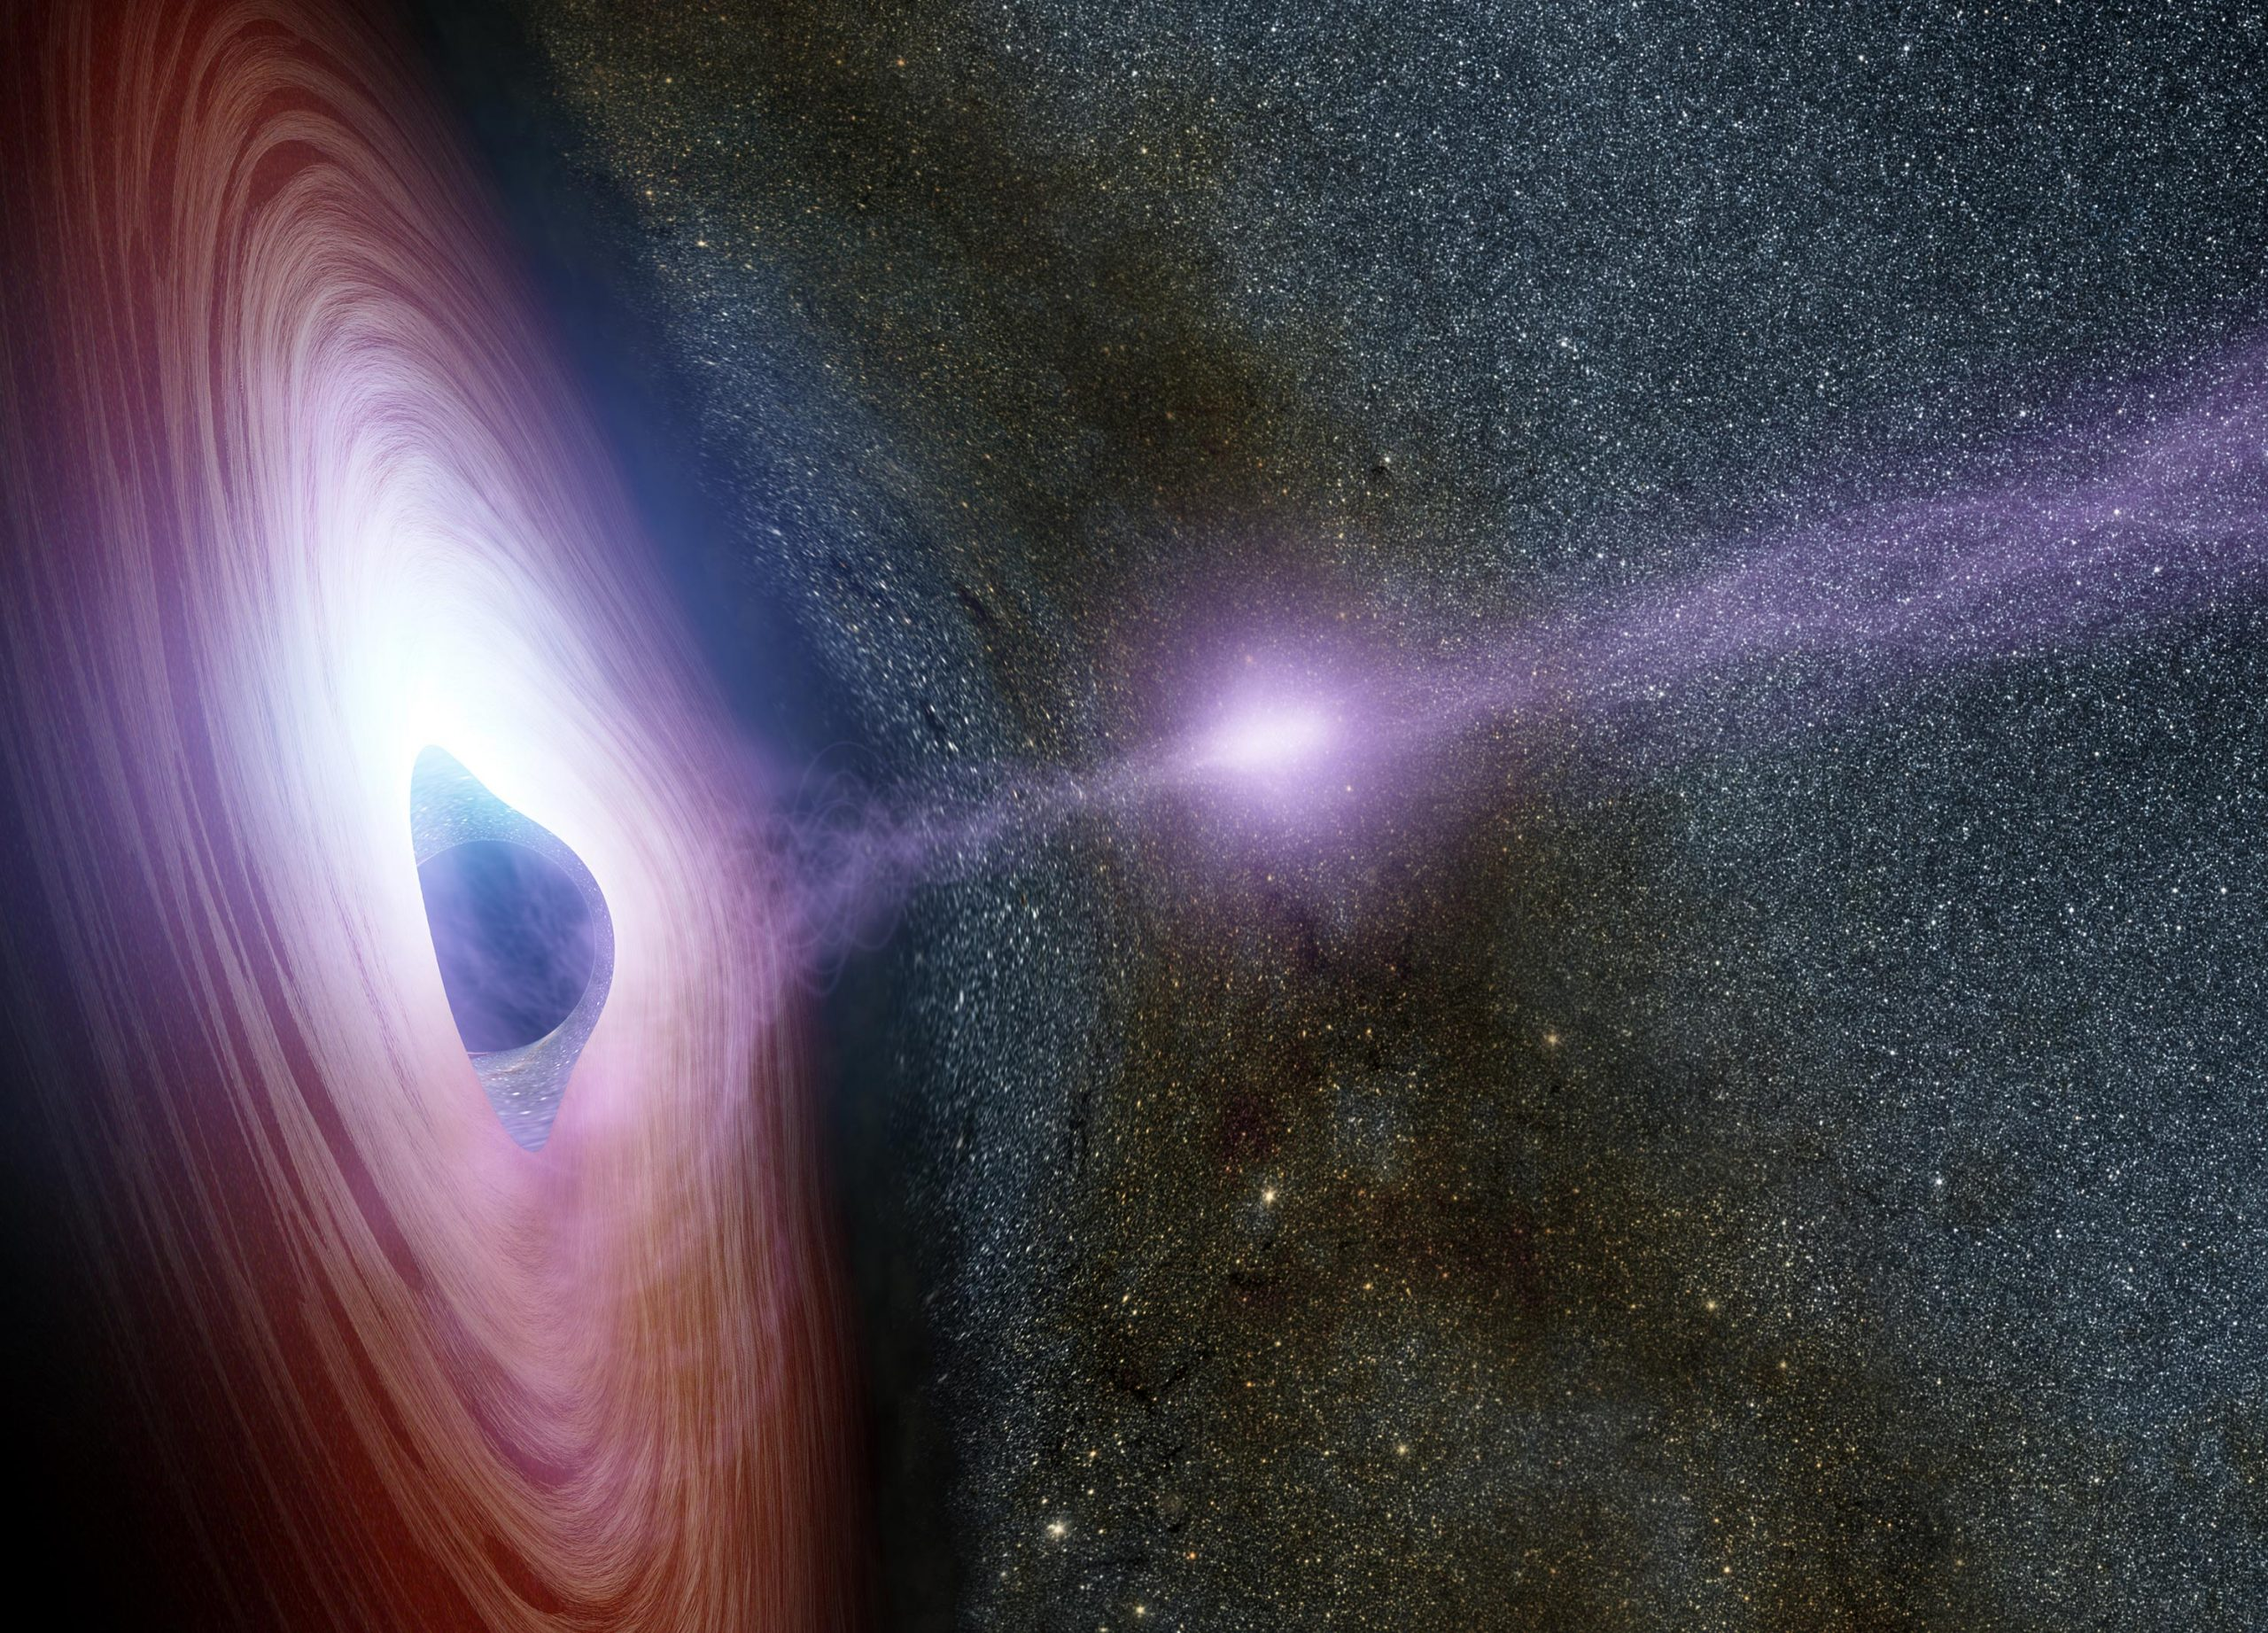 Astronomers Watch a Black Hole's Corona Mysteriously Disappear, Then Reappear - SciTechDaily